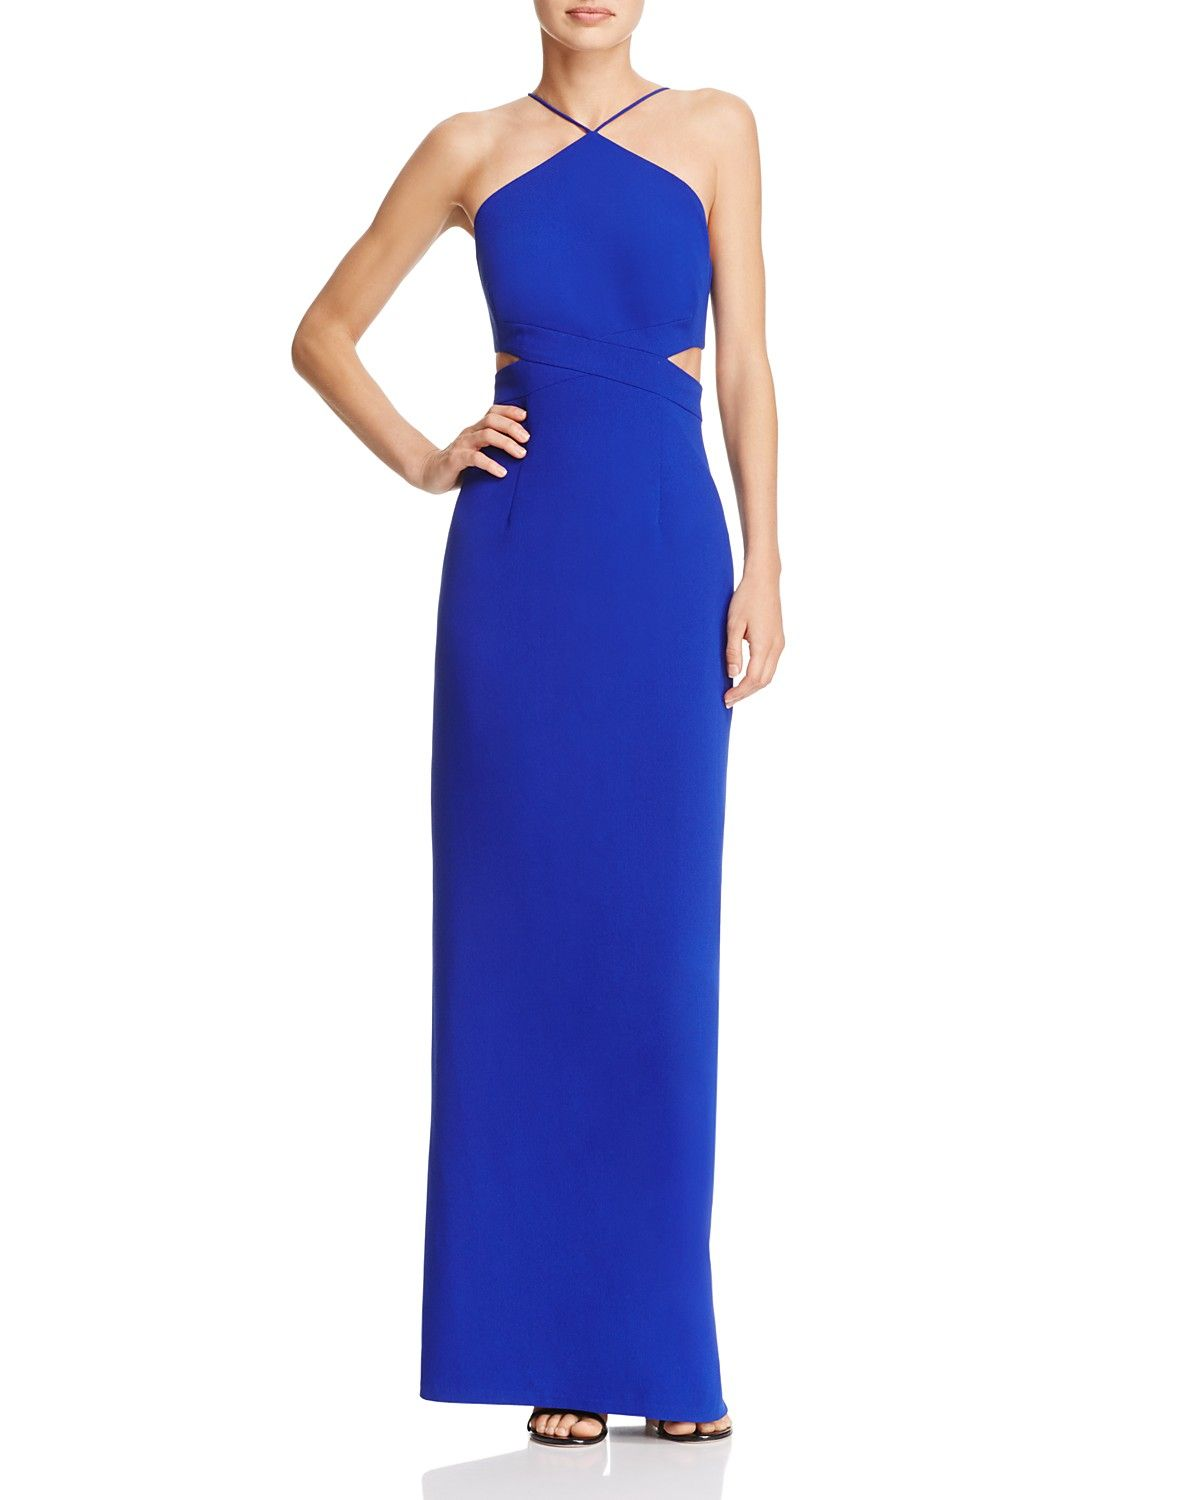 Cutout Crepe Gown - 100% Exclusive